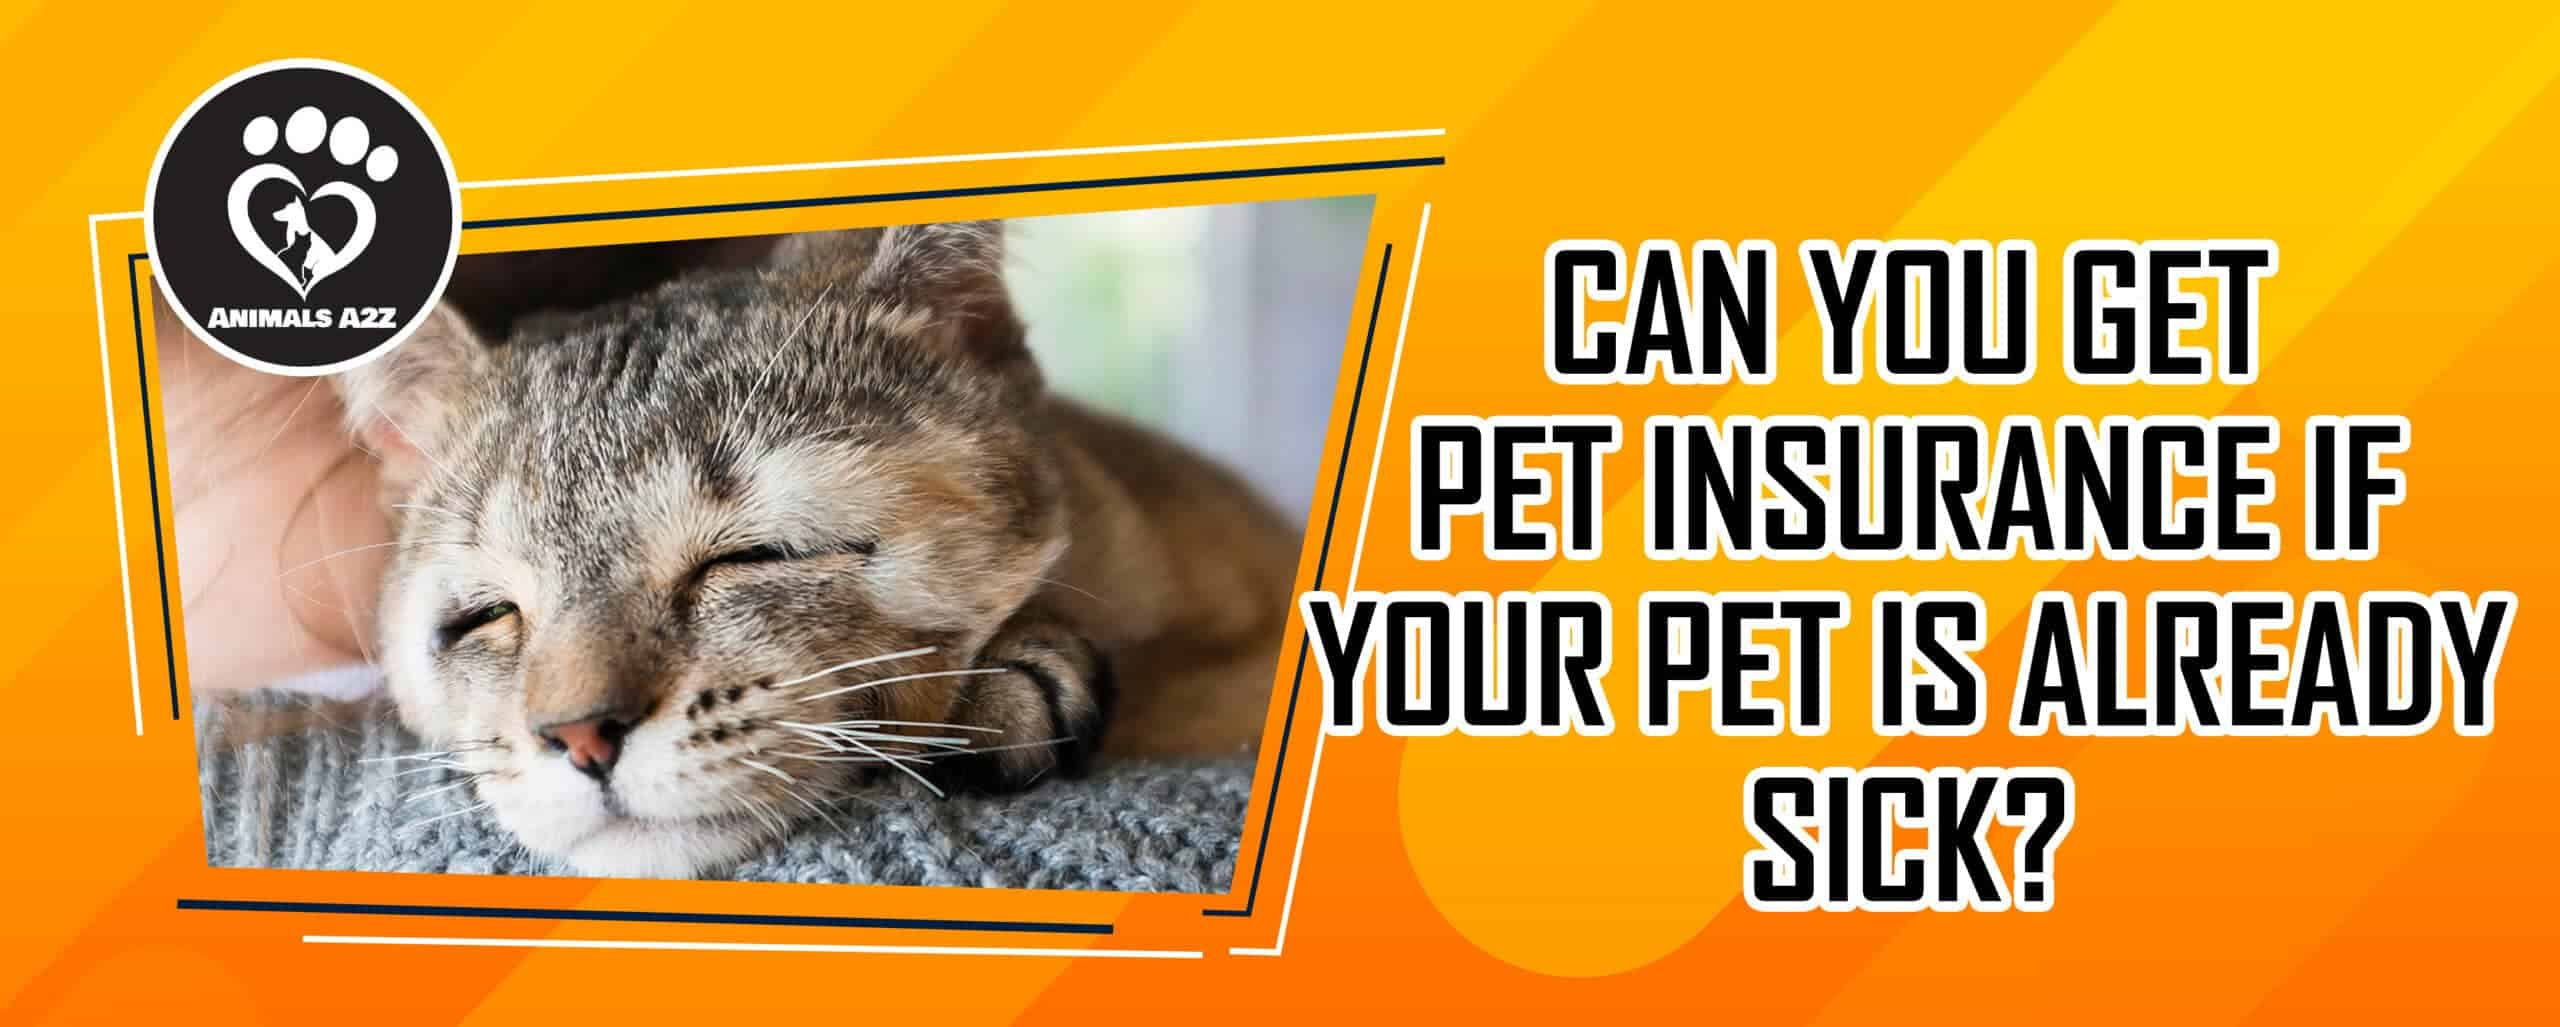 Can you get pet insurance if your pet is already sick?